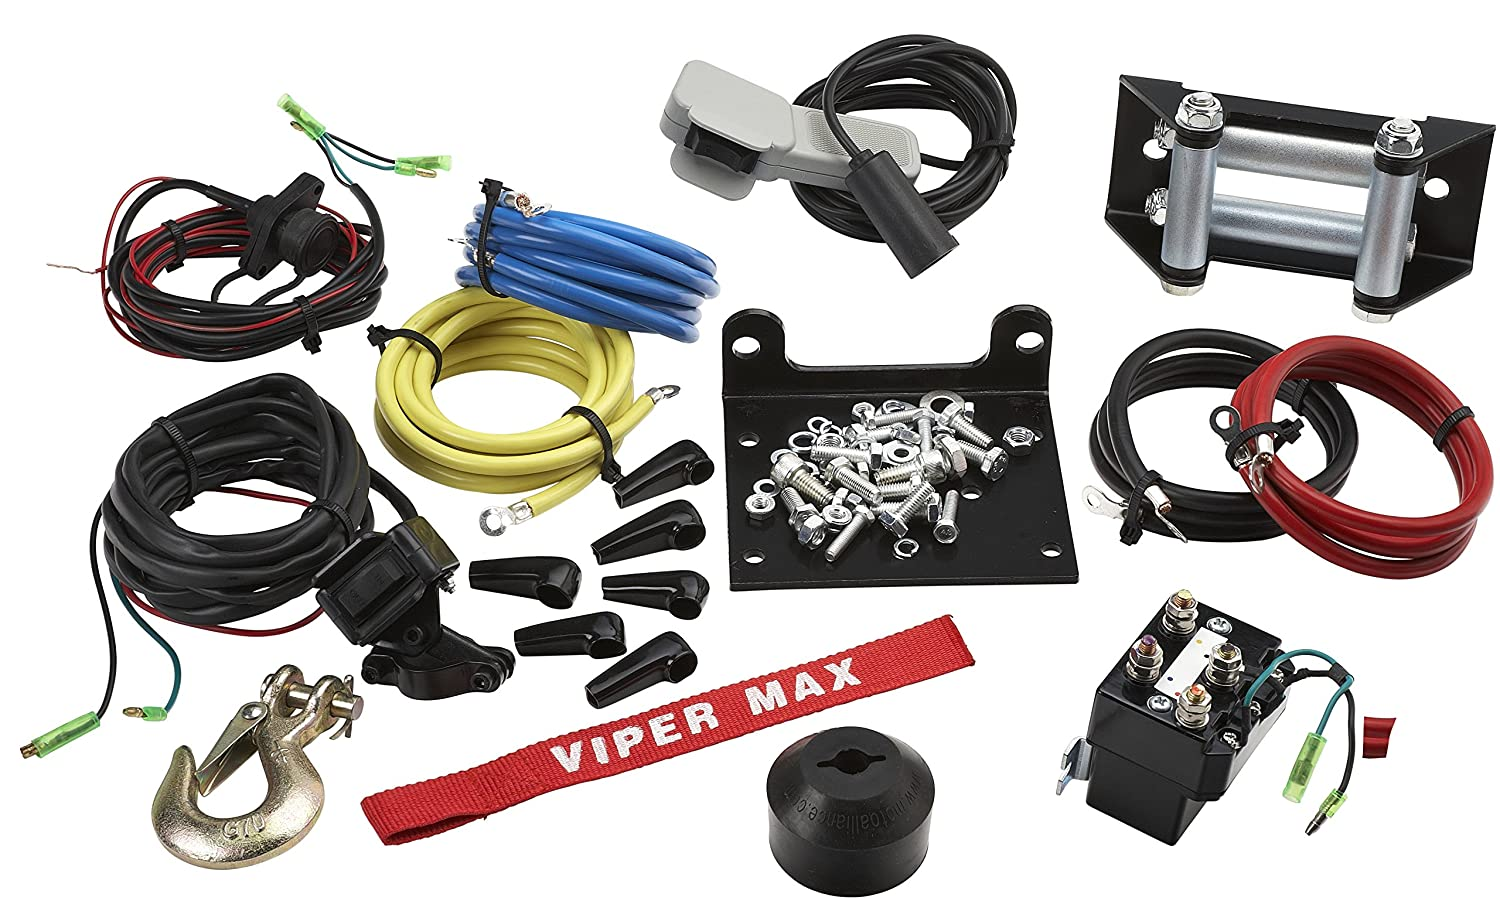 Amazon.com: VIPER Max 5000lb ATV/UTV Winch Kit with 50 feet Steel Cable: Automotive